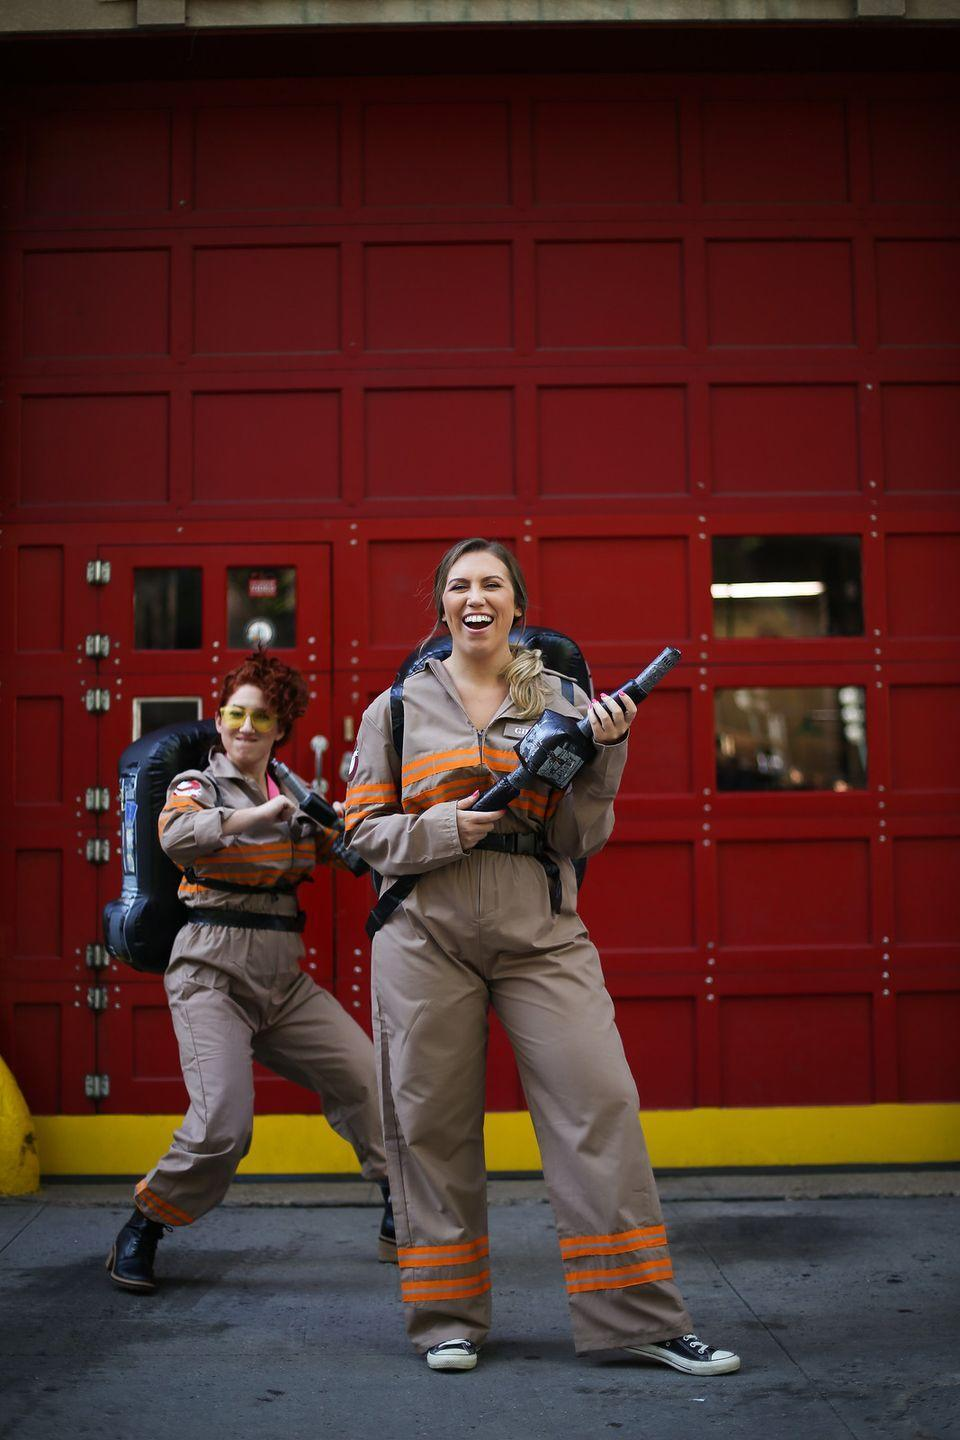 """<p>Show your neighborhood that you and your best friend really aren't afraid of no ghost by throwing on a khaki jumpsuit and backpack-turned-proton pack. </p><p><a class=""""link rapid-noclick-resp"""" href=""""https://www.amazon.com/Spirit-Halloween-Ghostbusters-Deluxe-Replica/dp/B071ZBPH6D/?tag=syn-yahoo-20&ascsubtag=%5Bartid%7C10055.g.21969310%5Bsrc%7Cyahoo-us"""" rel=""""nofollow noopener"""" target=""""_blank"""" data-ylk=""""slk:SHOP PROTON PACK"""">SHOP PROTON PACK</a> </p><p><em><a href=""""http://livingaftermidnite.com/2019/10/group-halloween-costumes-that-will-win-you-best-dressed.html"""" rel=""""nofollow noopener"""" target=""""_blank"""" data-ylk=""""slk:Get the tutorial at Living After Midnite >>"""" class=""""link rapid-noclick-resp"""">Get the tutorial at Living After Midnite >></a><br></em></p>"""